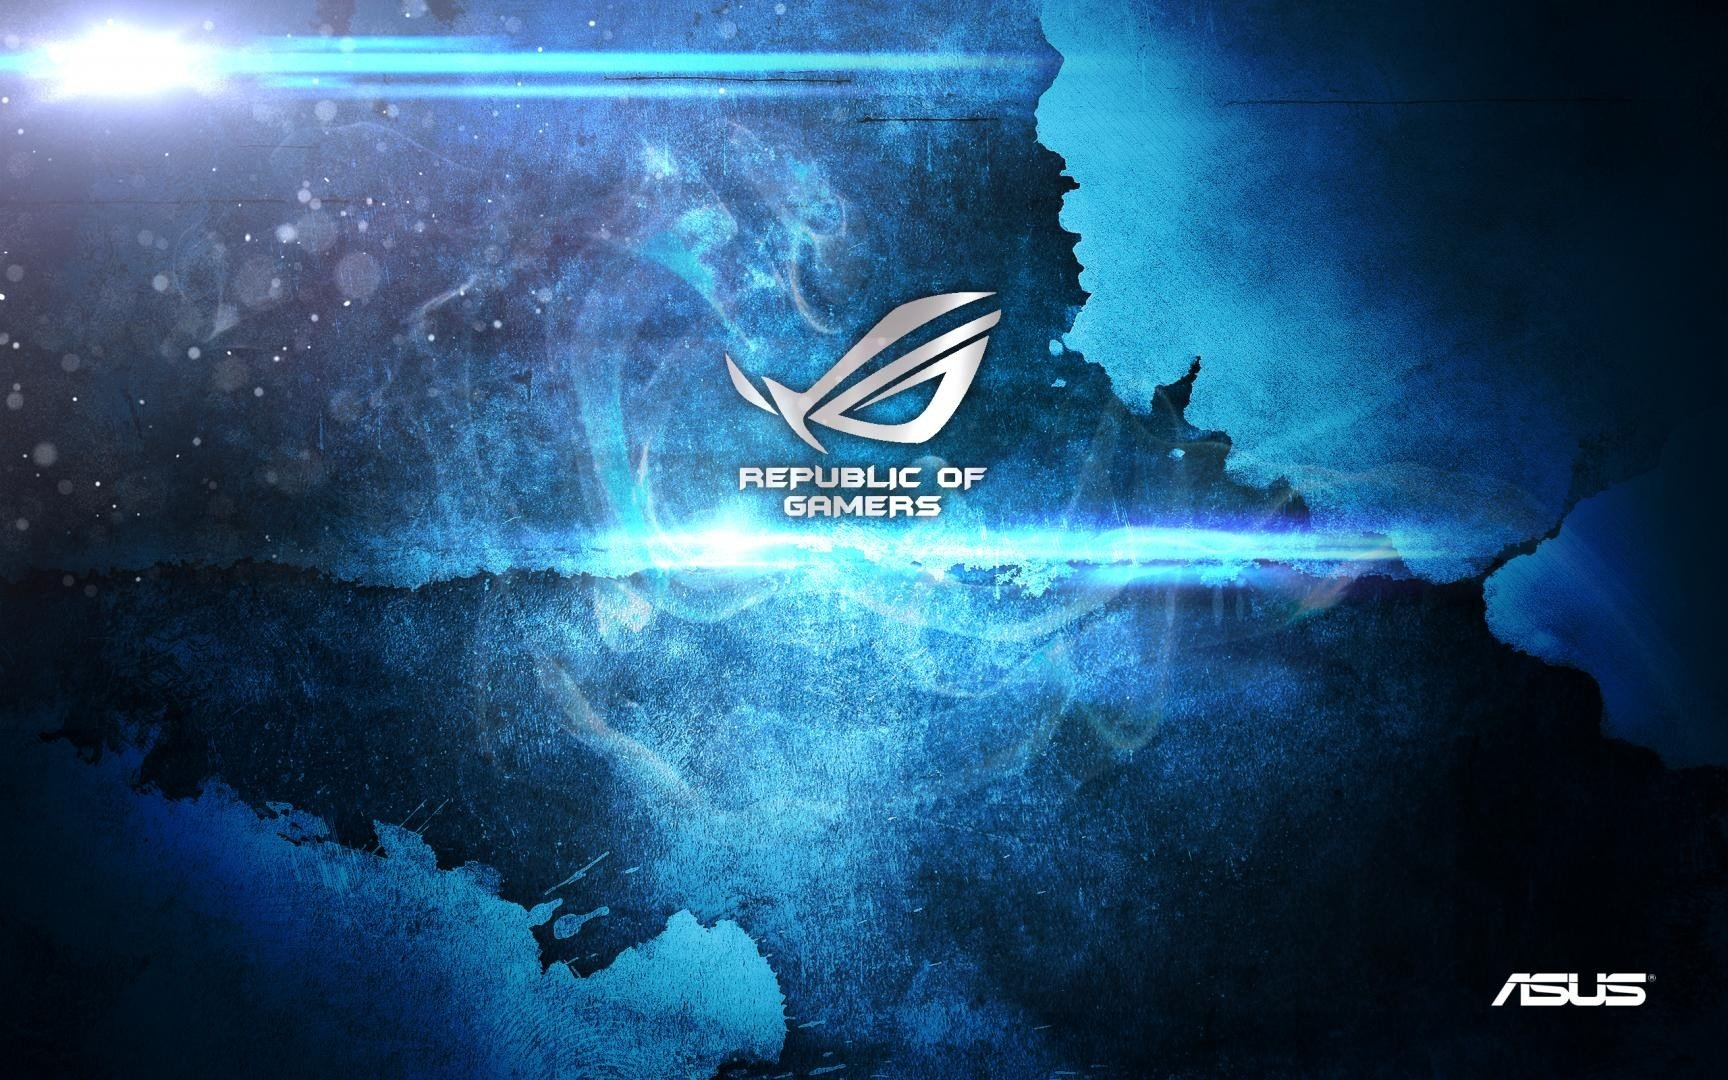 Asus Rog Republic Of Gamers Asus Hd Wallpapers Desktop And Mobile Images Photos